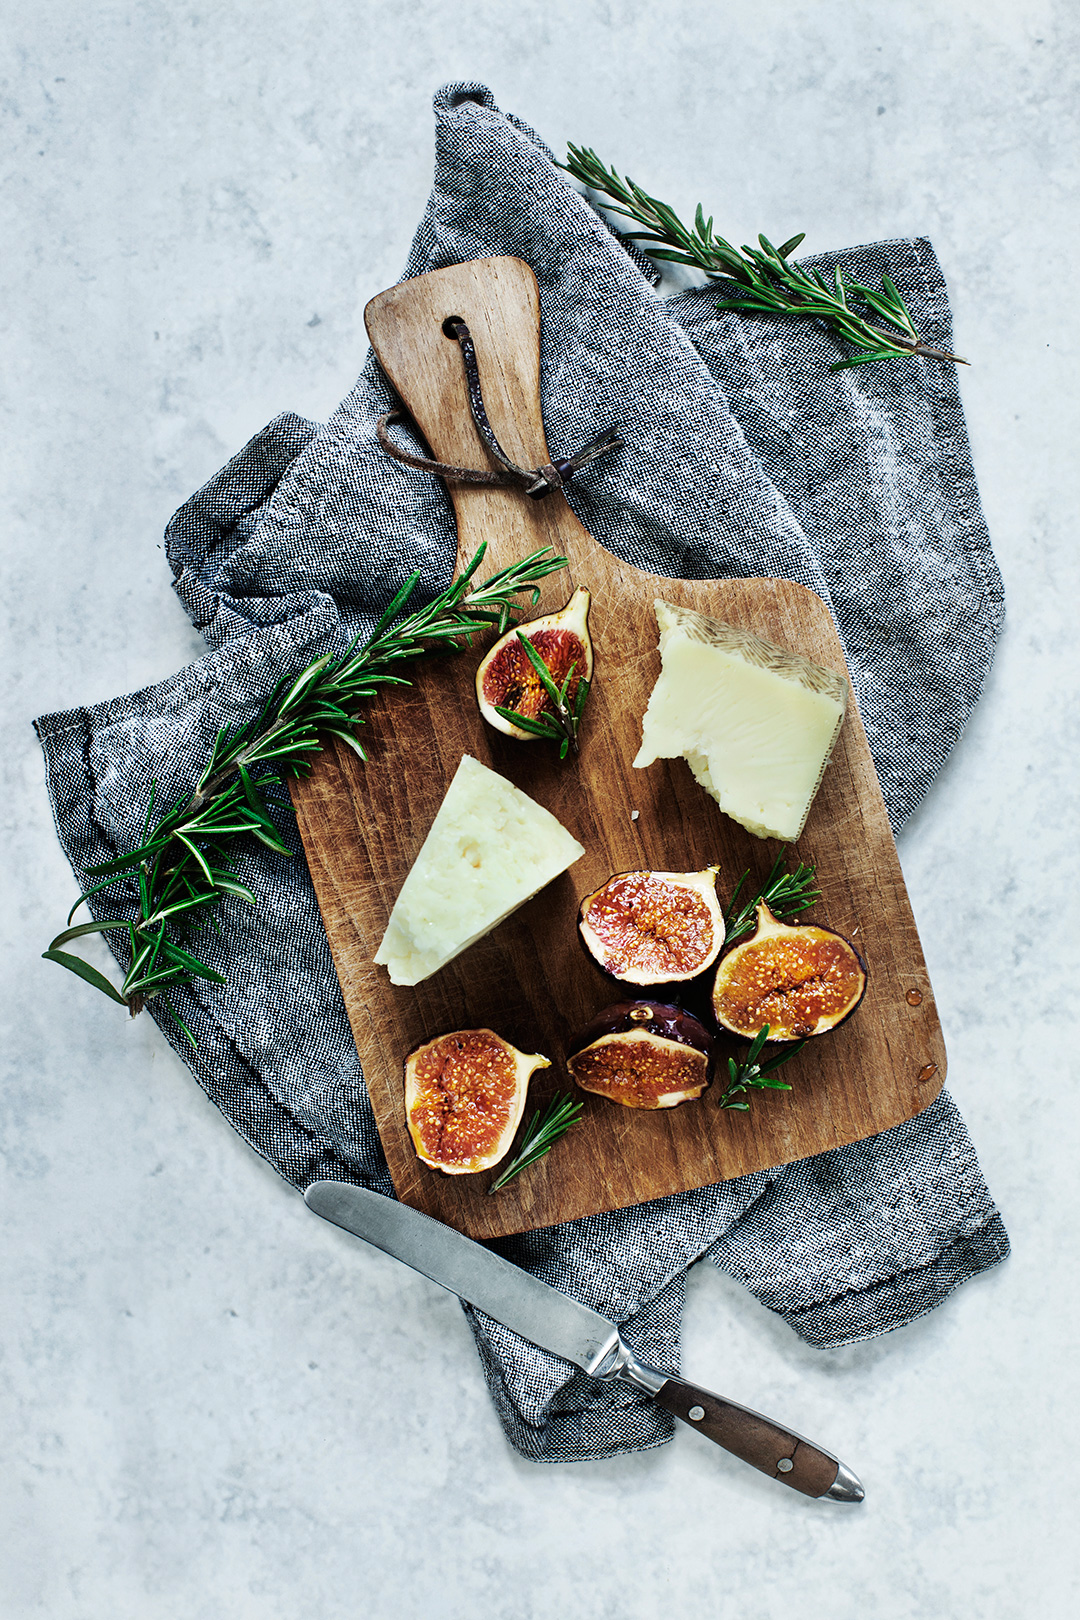 & Braised Figs with Cheese | Modern Wifestyle